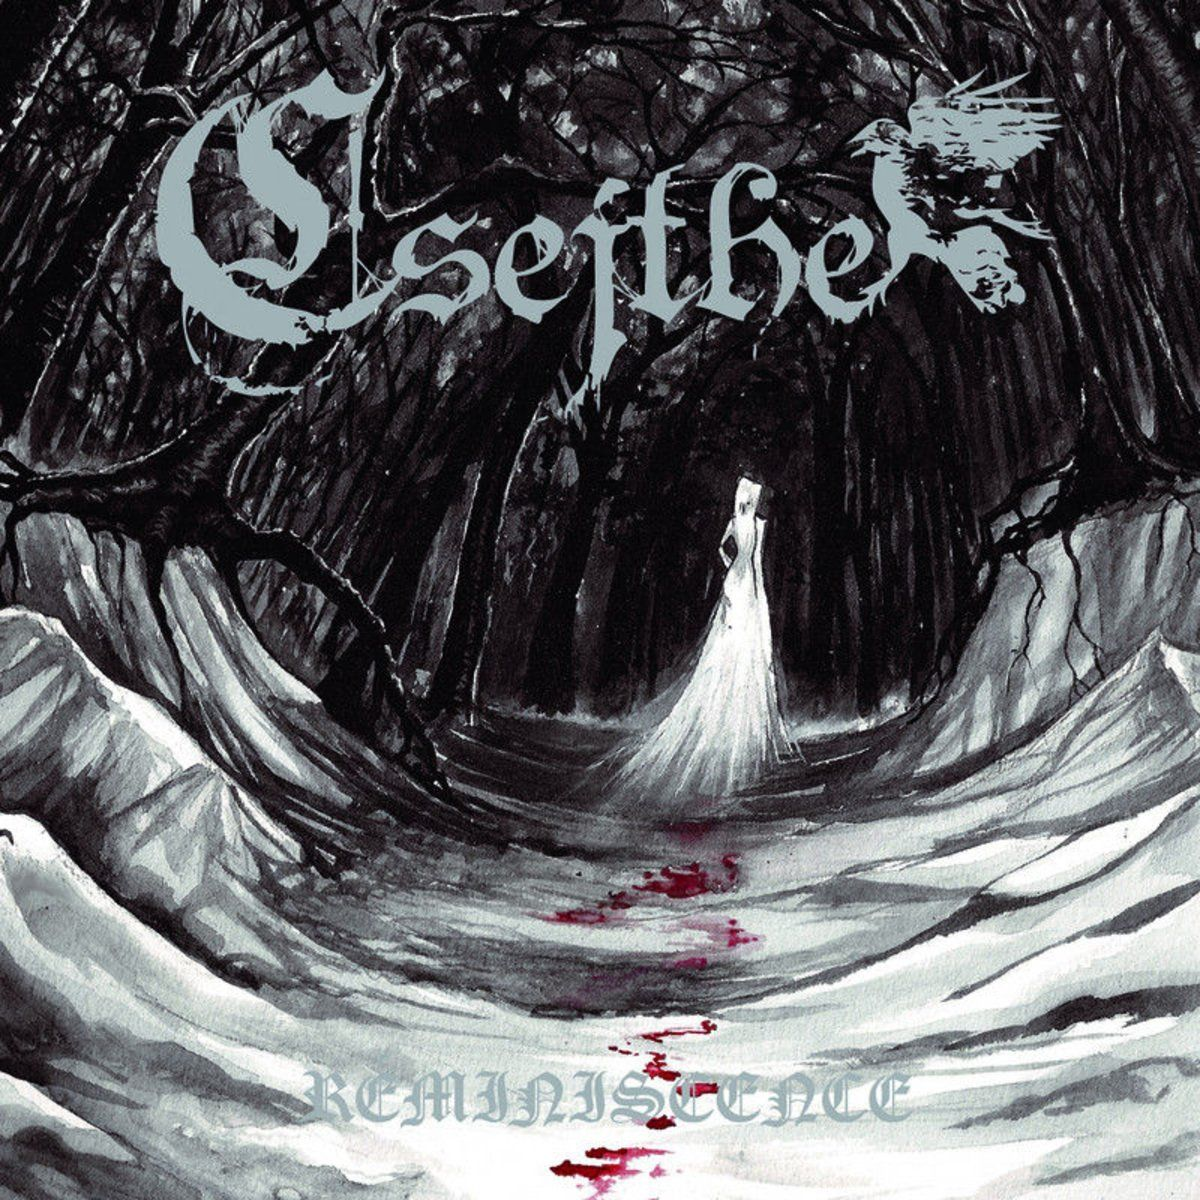 Review for Csejthe (CAN) - Réminiscence